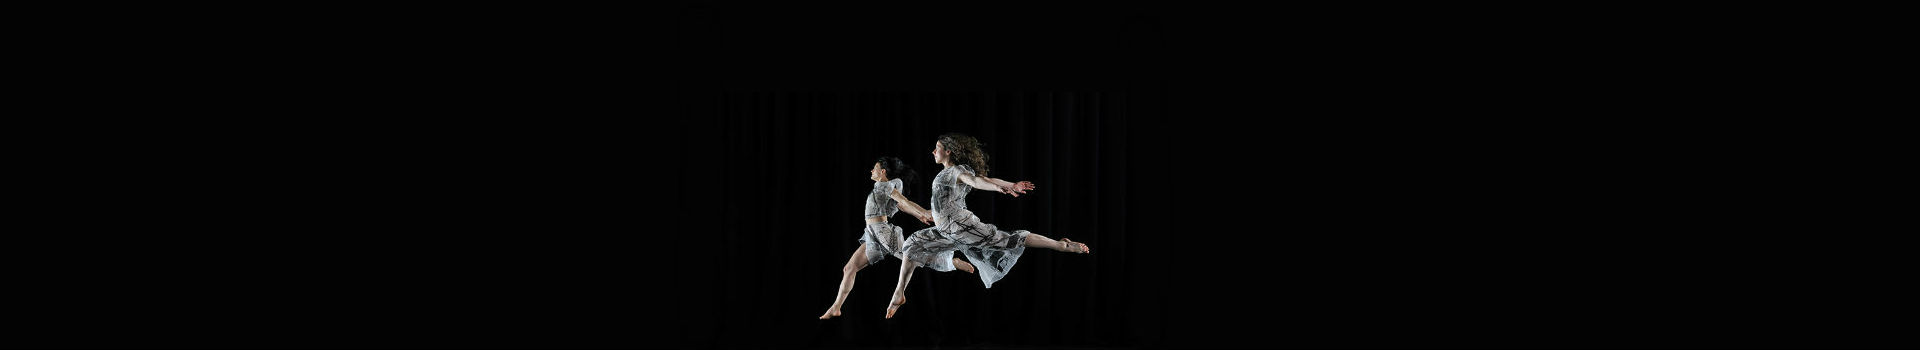 Candoco Dance Company — Beheld & Set and Reset/Reset banner image